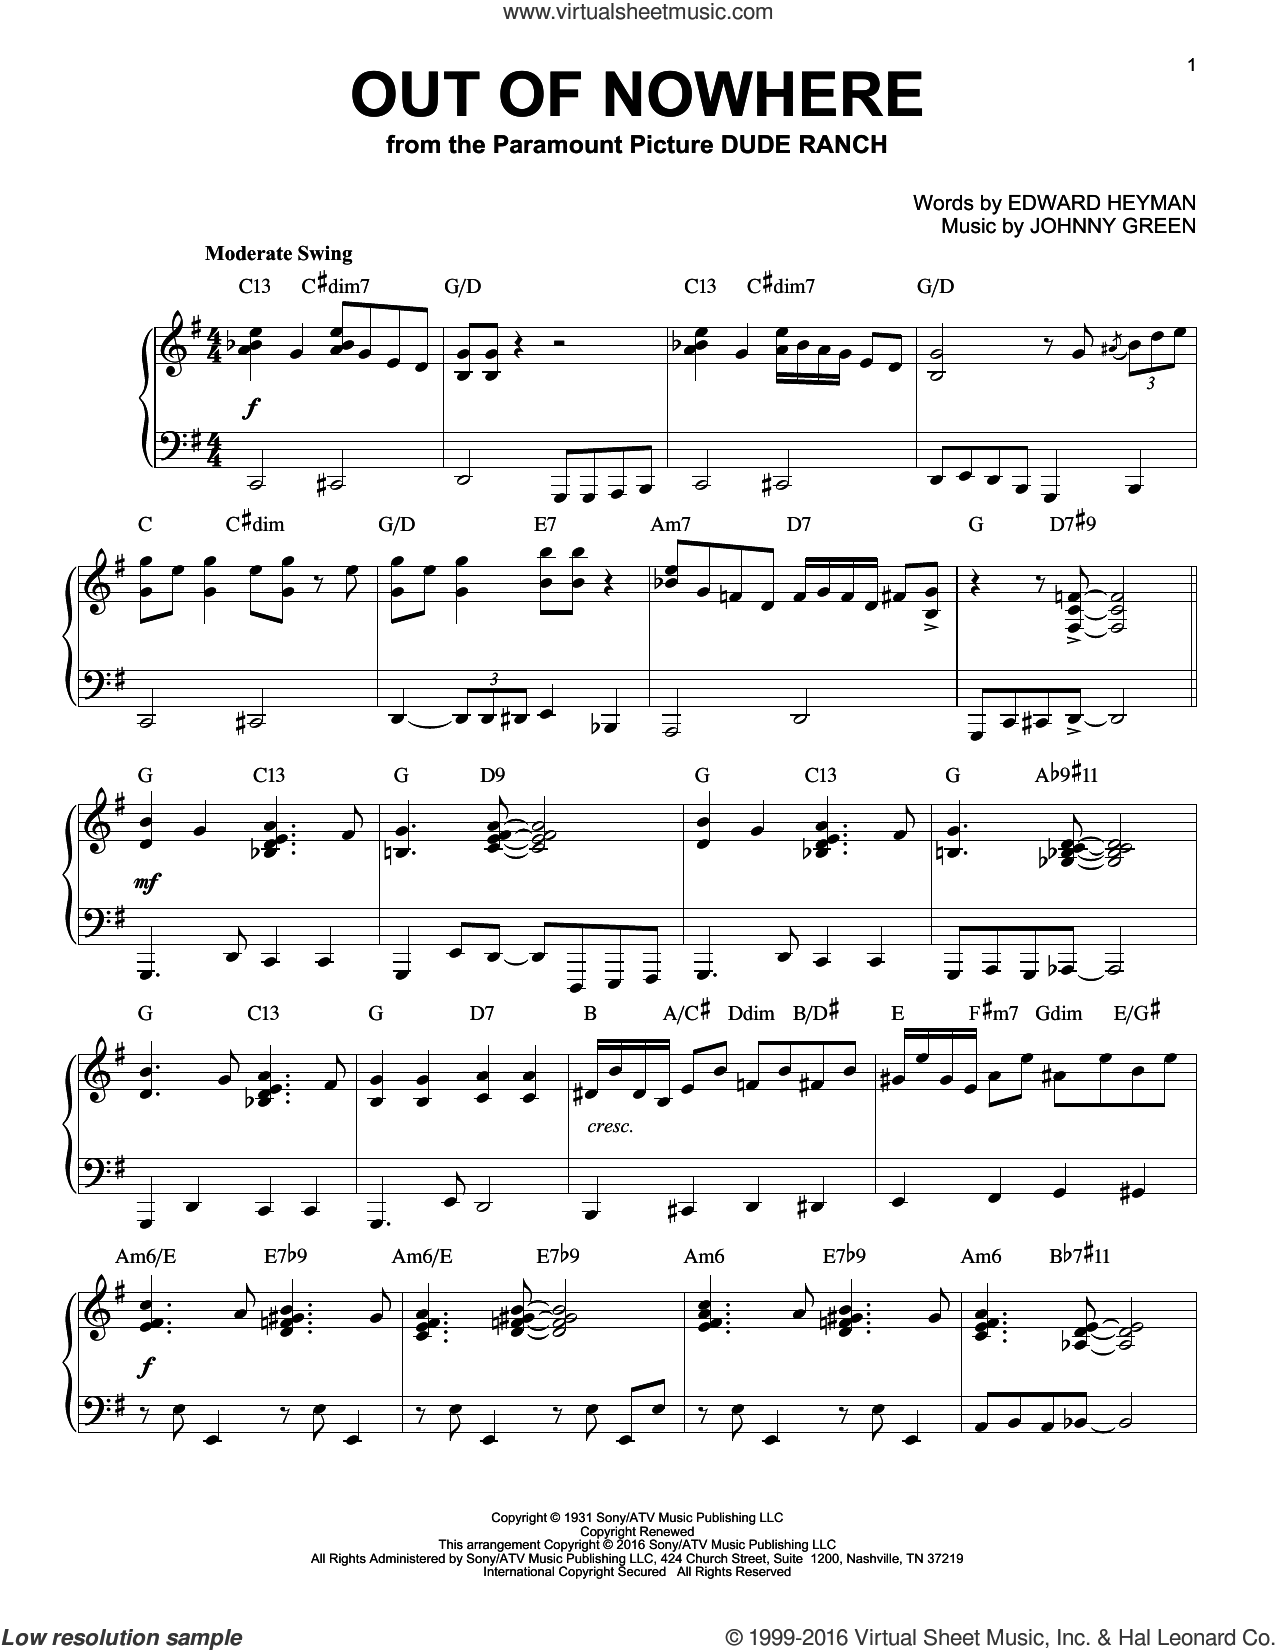 Out Of Nowhere sheet music for piano solo by Edward Heyman, Buddy DeFranco and Johnny Green, intermediate skill level